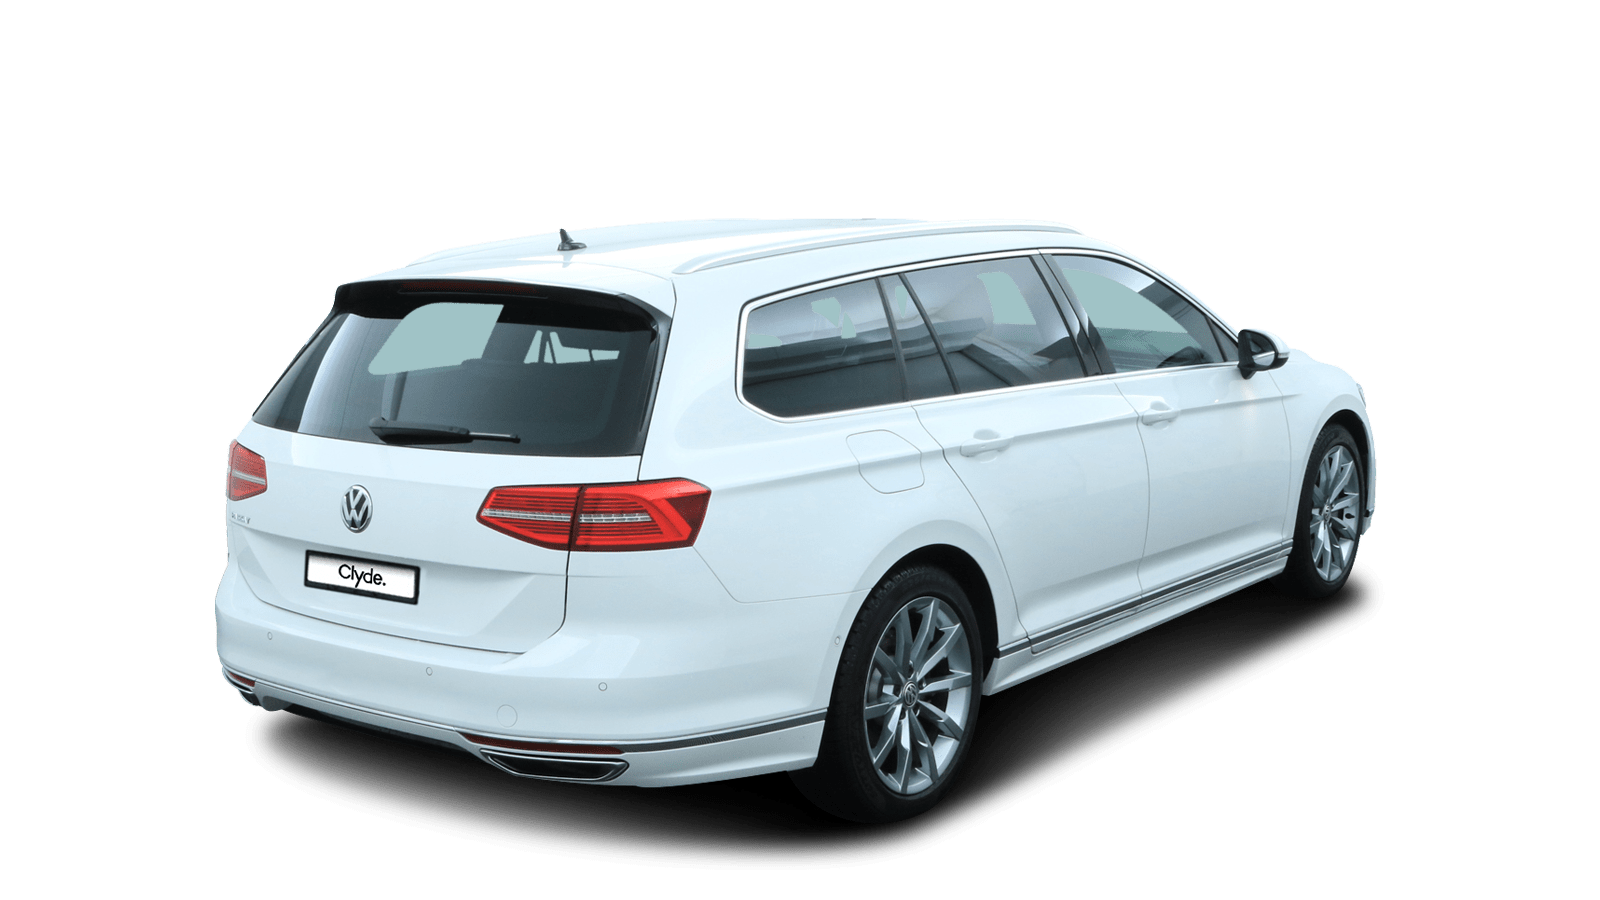 VW Passat Variant White back - Clyde car subscription